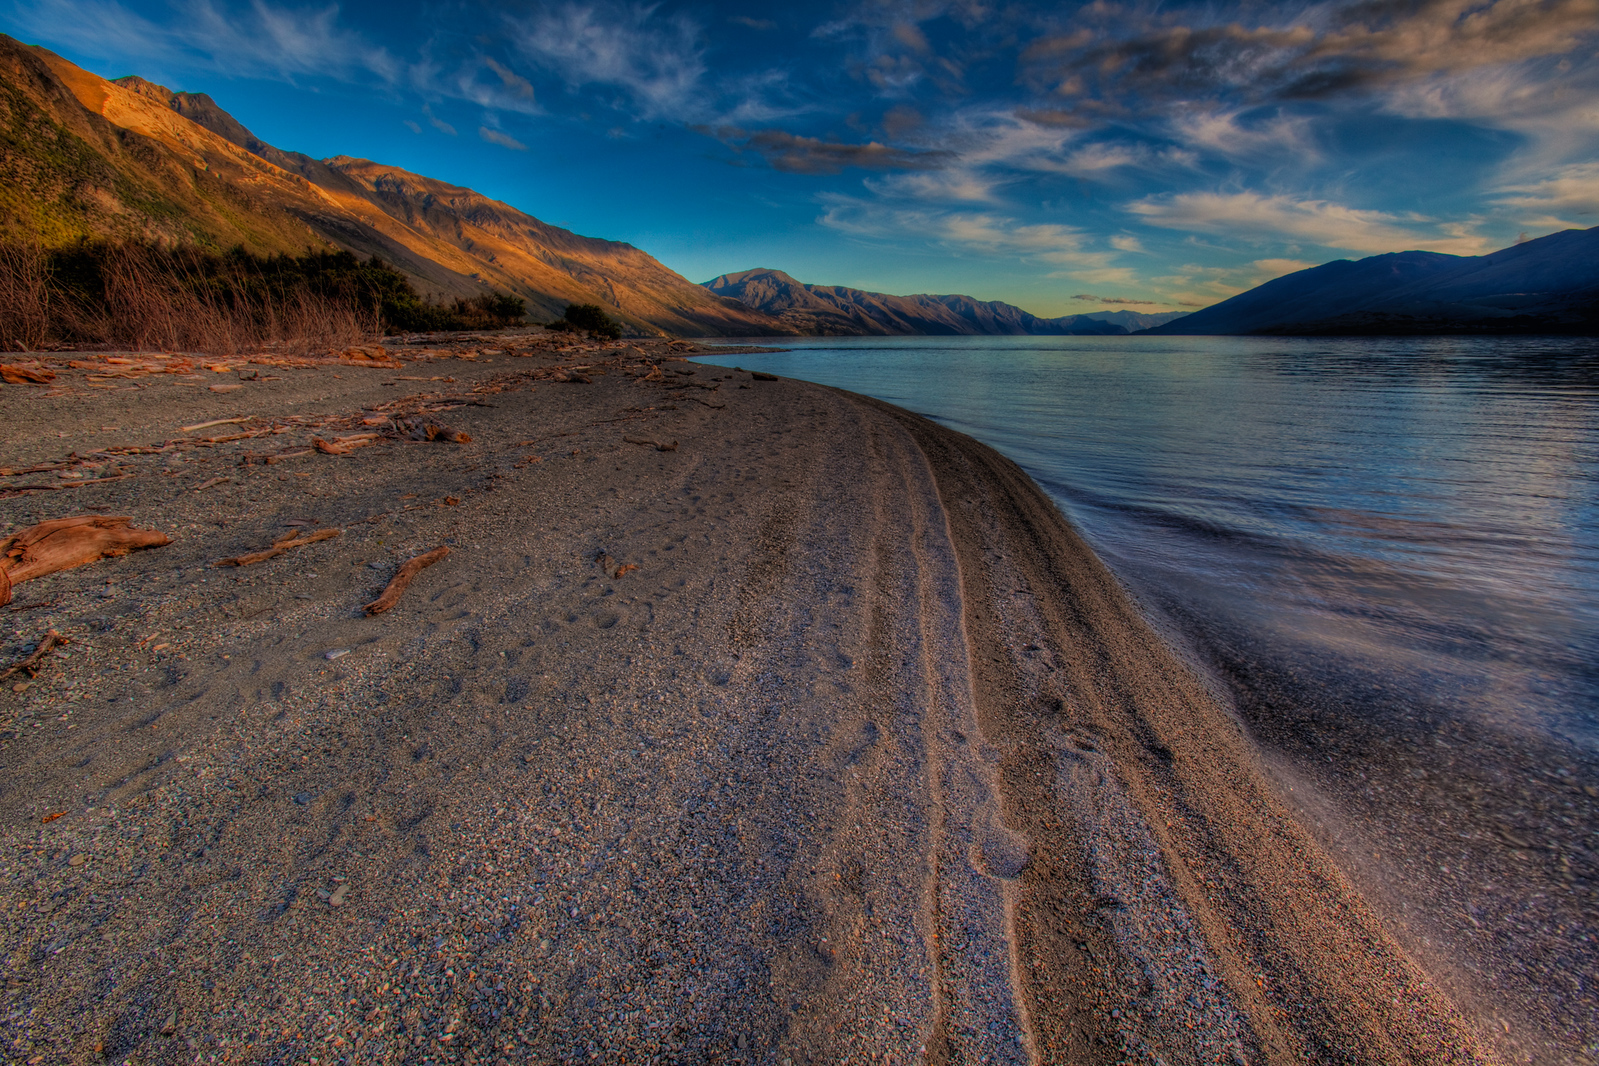 Sunset on the shores of an unnamed lake outside of Queenstown, New Zealand